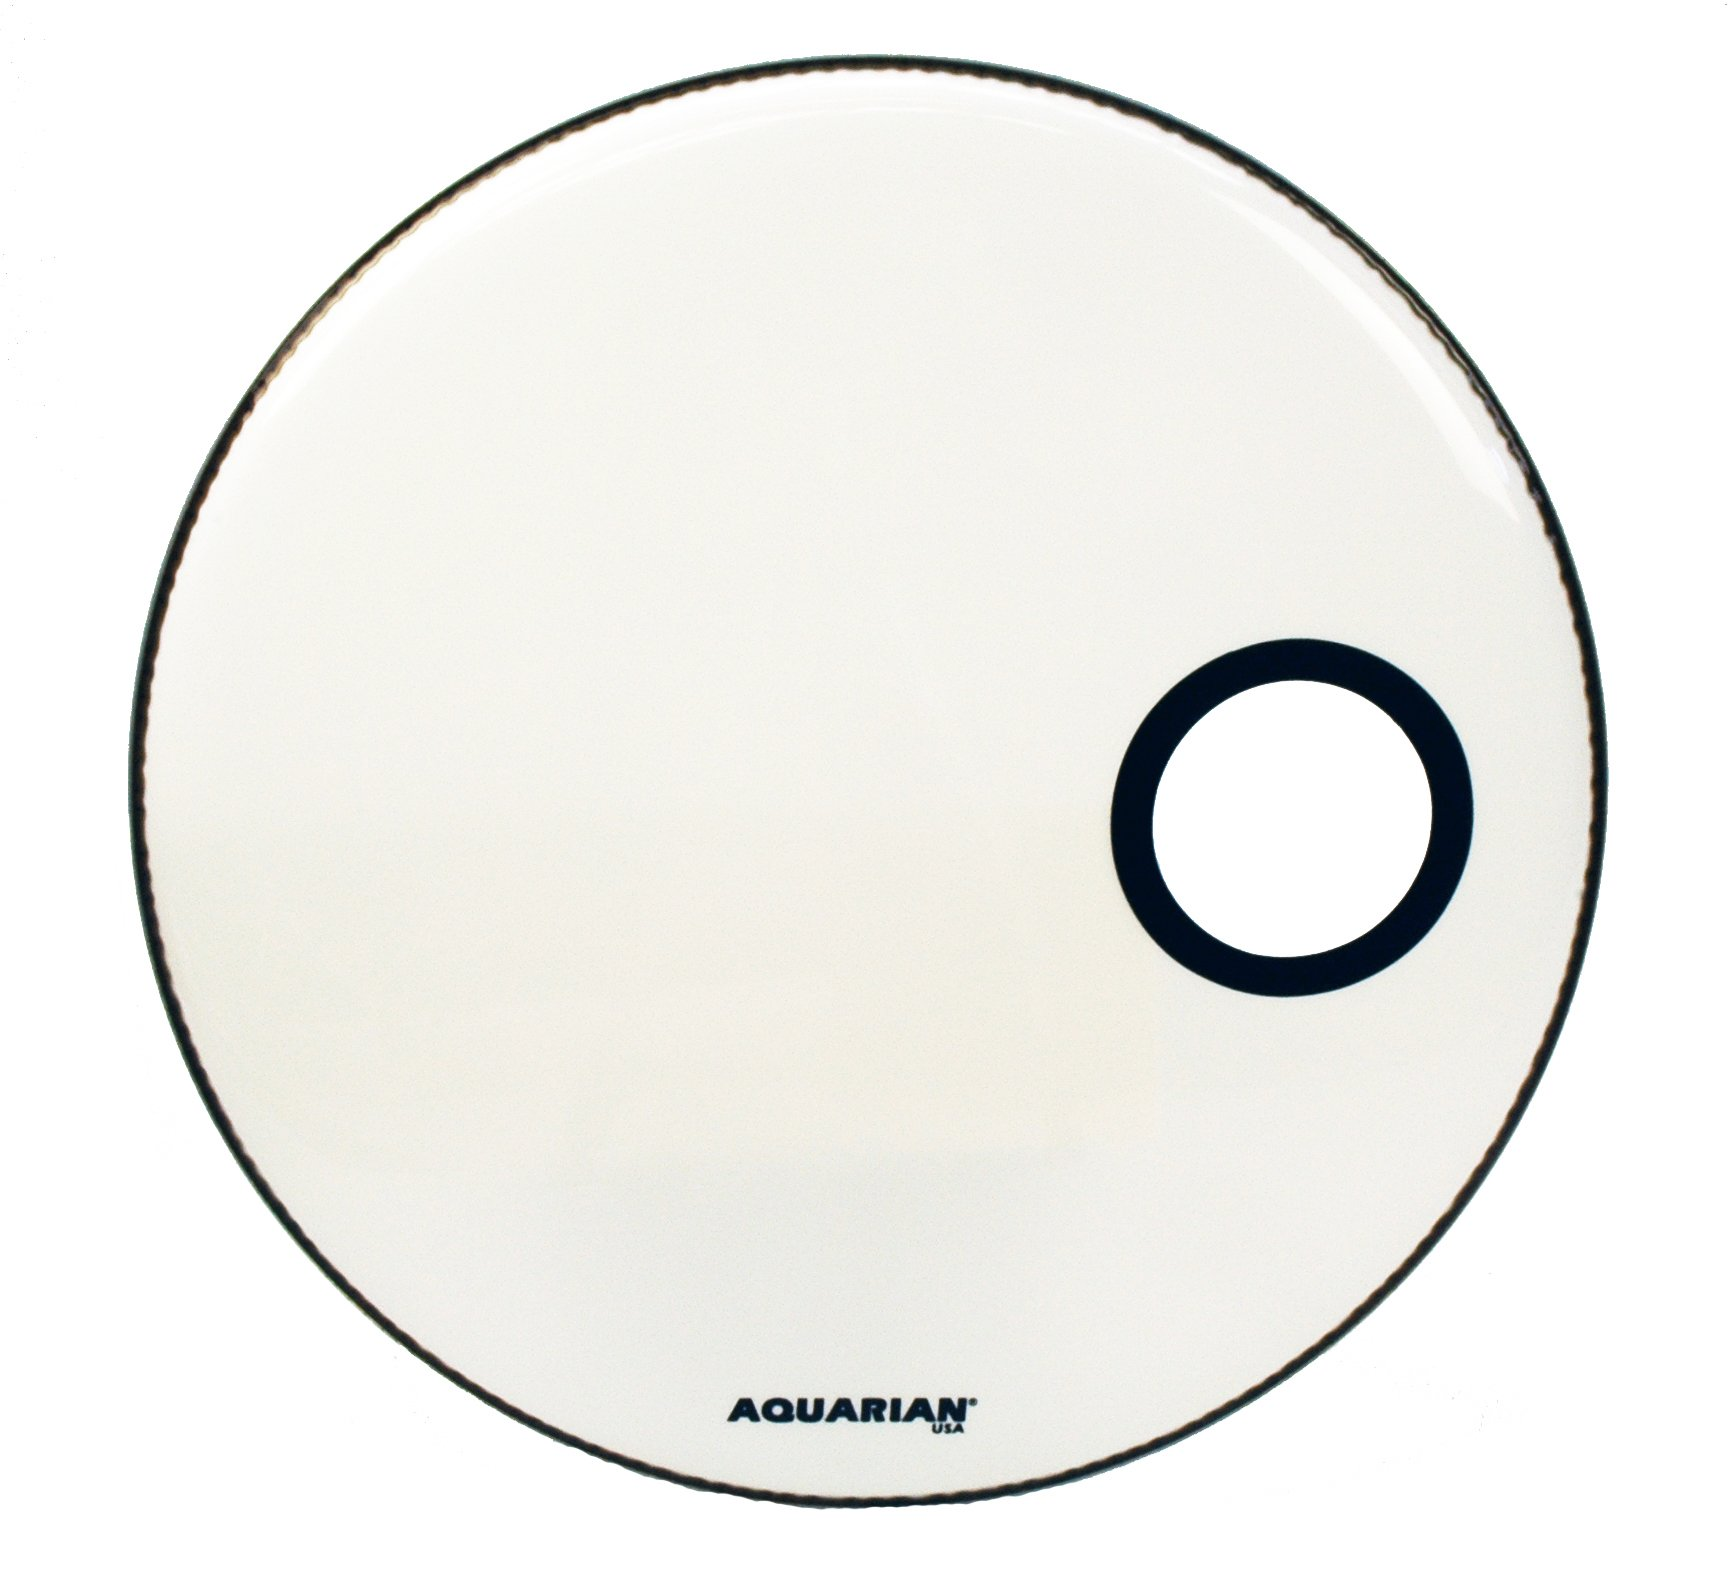 Aquarian Drumheads SMPTCC20WH Offset Ported Bass 20-inch Bass Drum Head, goss white